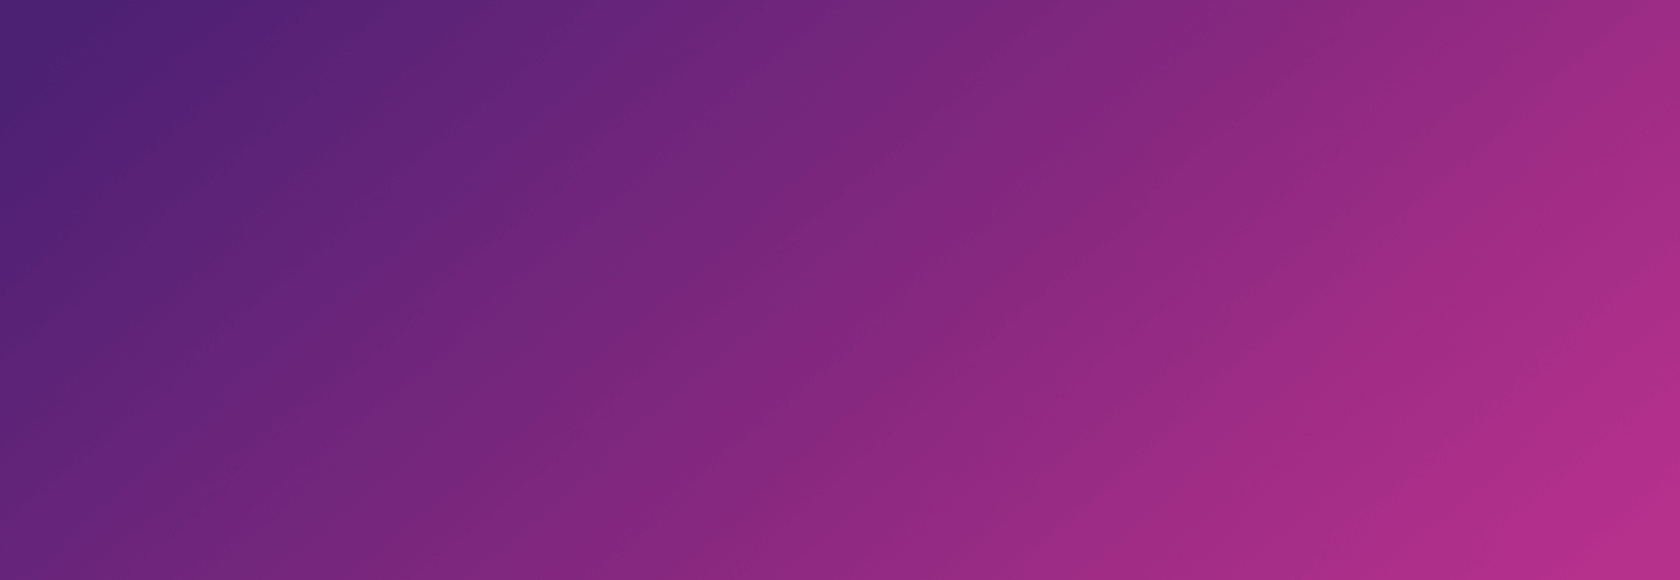 pink purple gradient